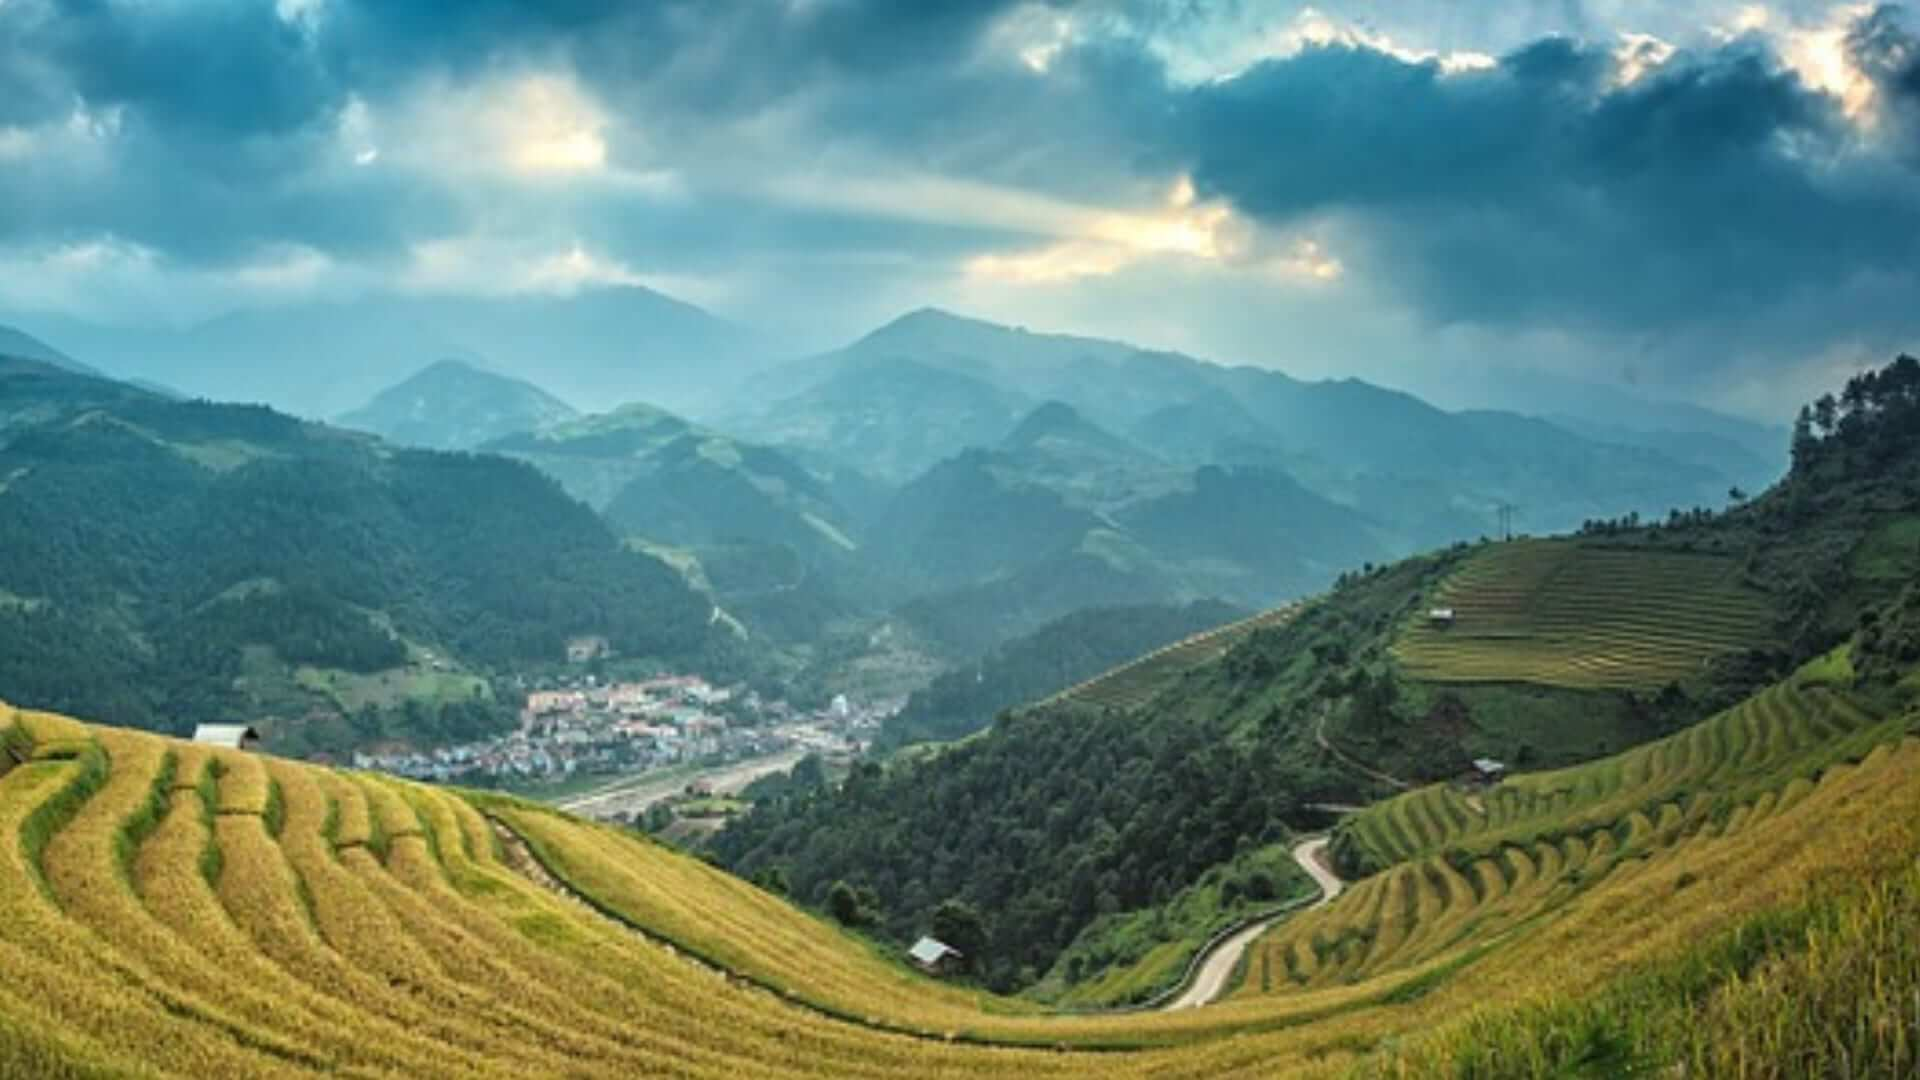 Green ricefields and mountains are surrounding a small farmer's village in China.